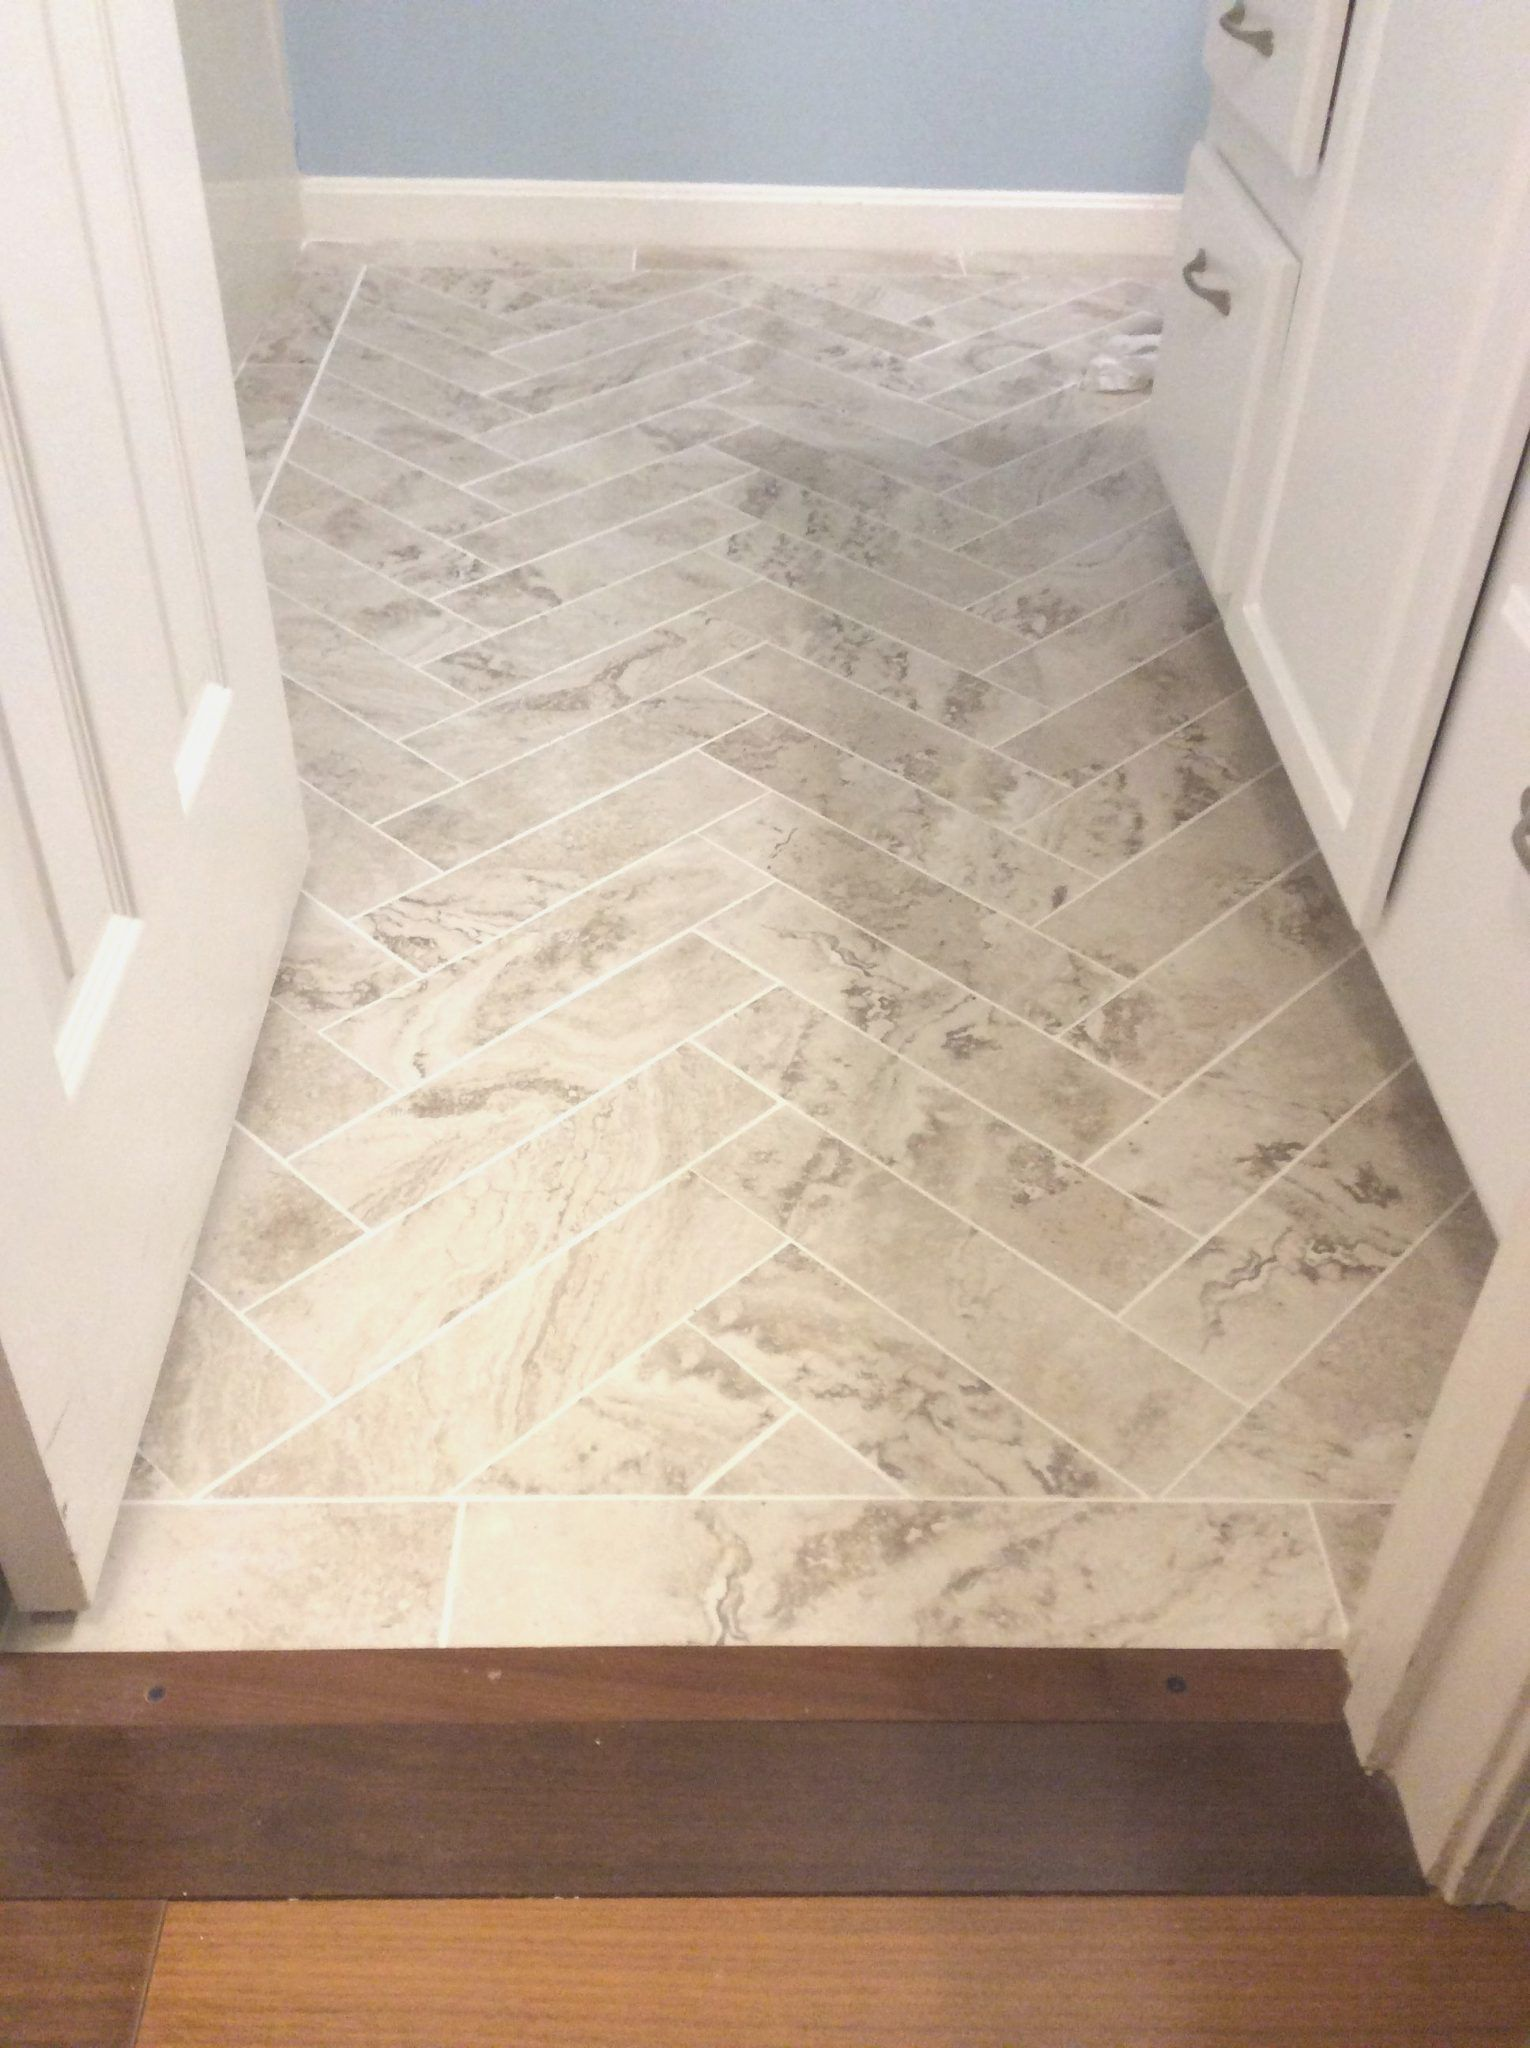 Home Depot Kitchen Floor Tiles Home Depot Ceramic Tile I Home Depot Ceramic Tile Planks Home Depot Floor Bathroom Vinyl Patterned Bathroom Tiles Vinyl Tile